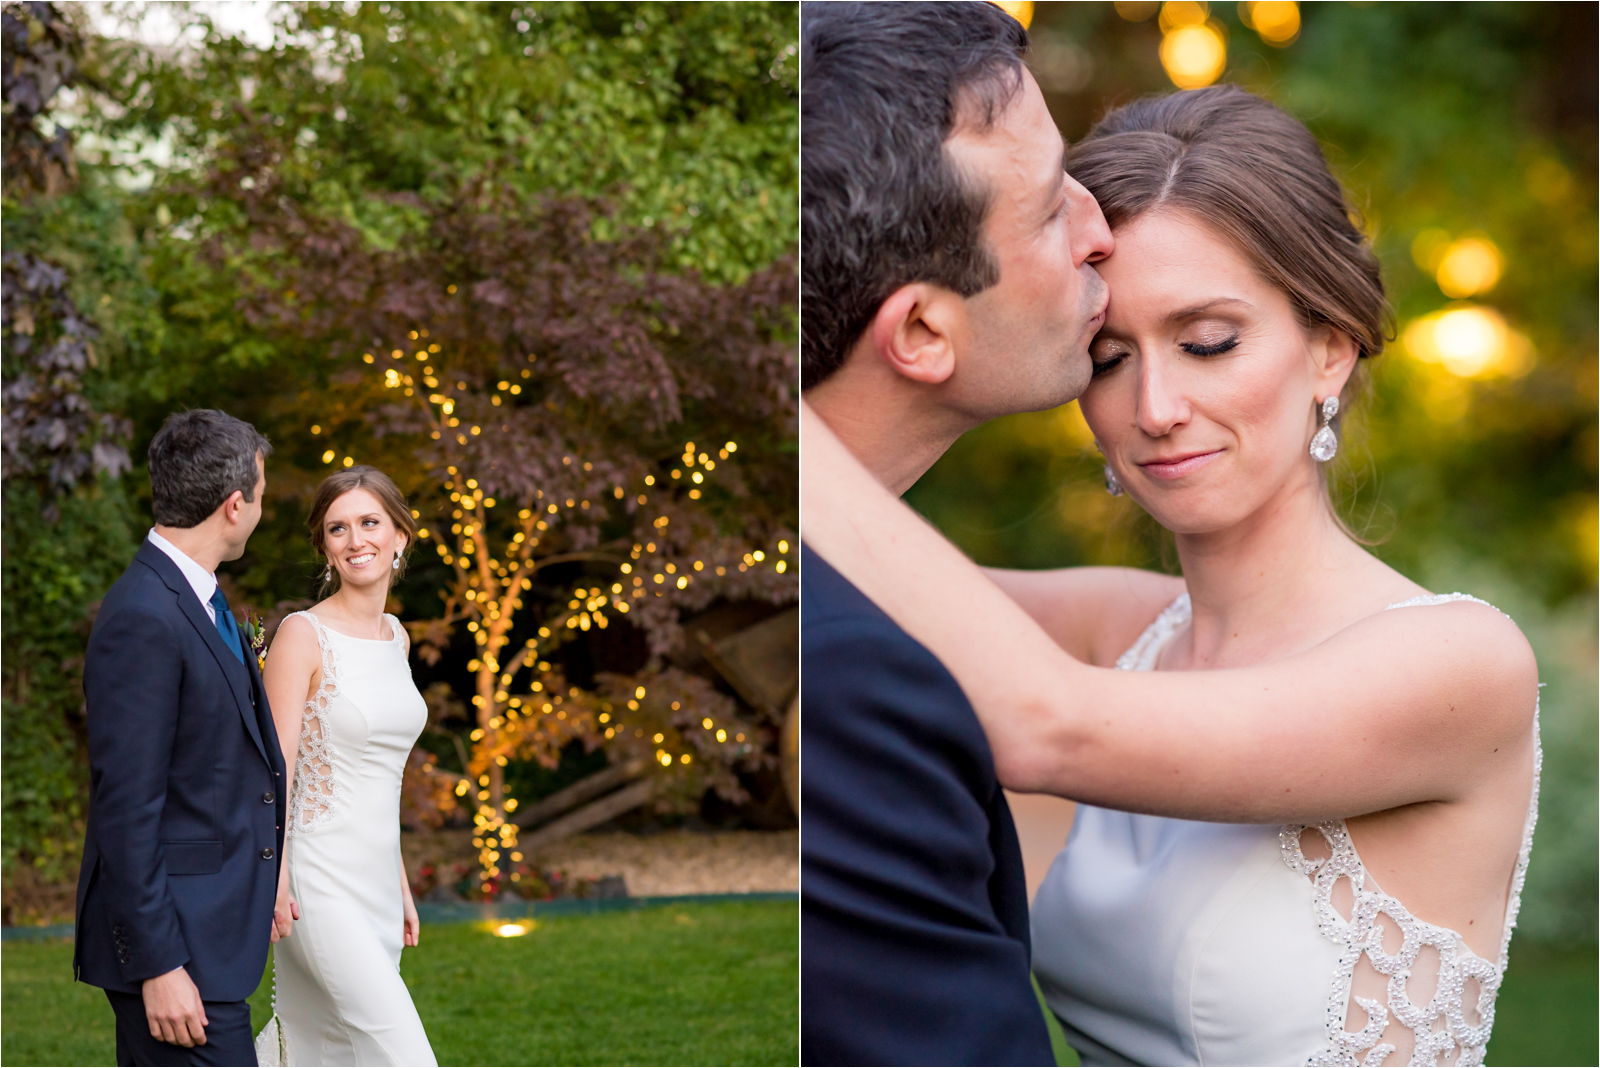 wedding-day-destination wedding photographer-destination-photographer-chicago-illinois-malone-bubman-galleria-marchetti-jessica-capozzola-focus-on-joy-photography-bride-groom-bridal-portraits-portrait-couple